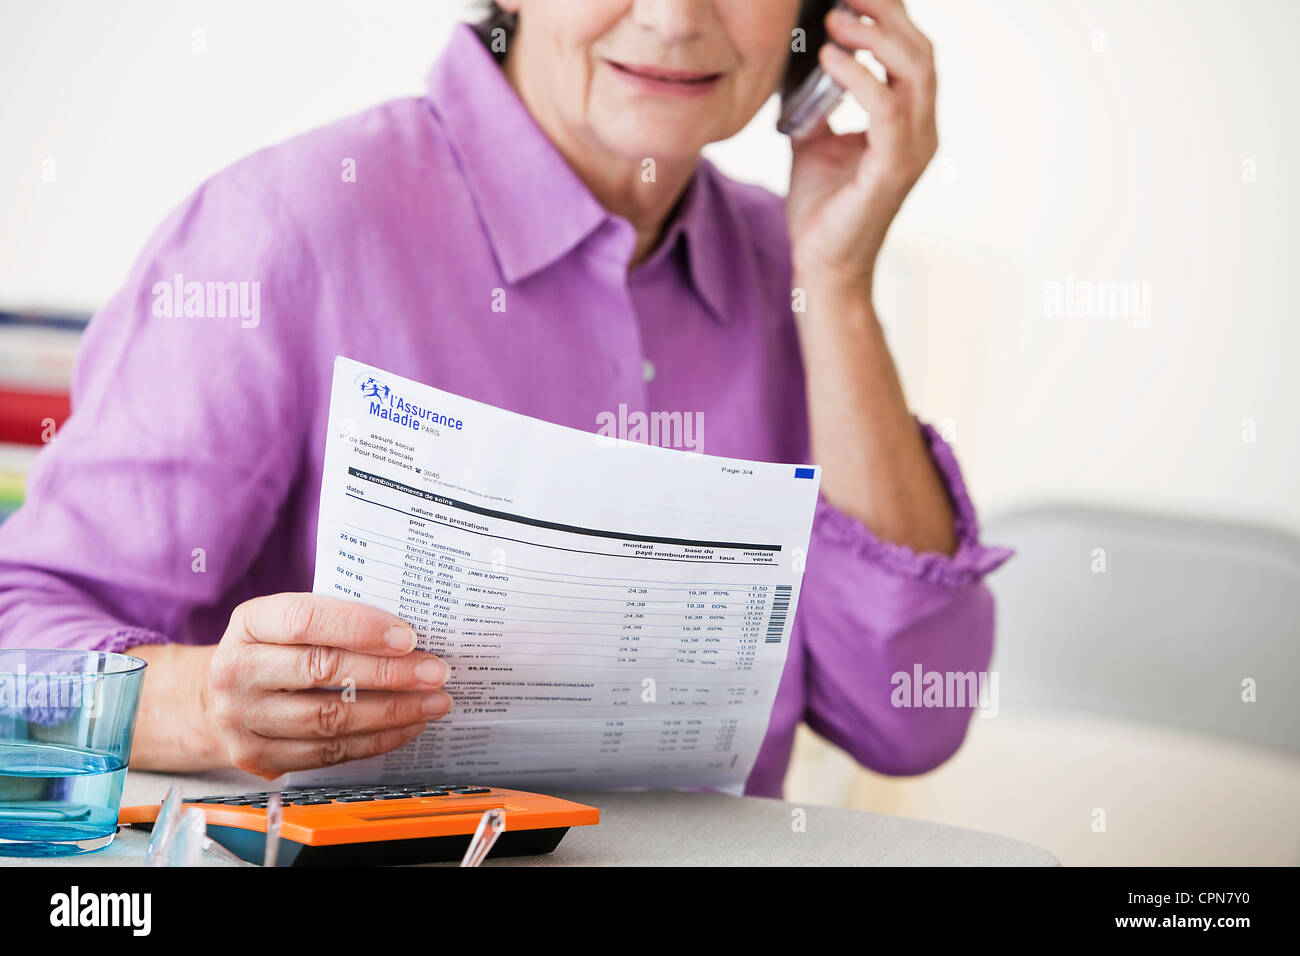 ELDERLY P. FILLING OUT FORMS - Stock Image